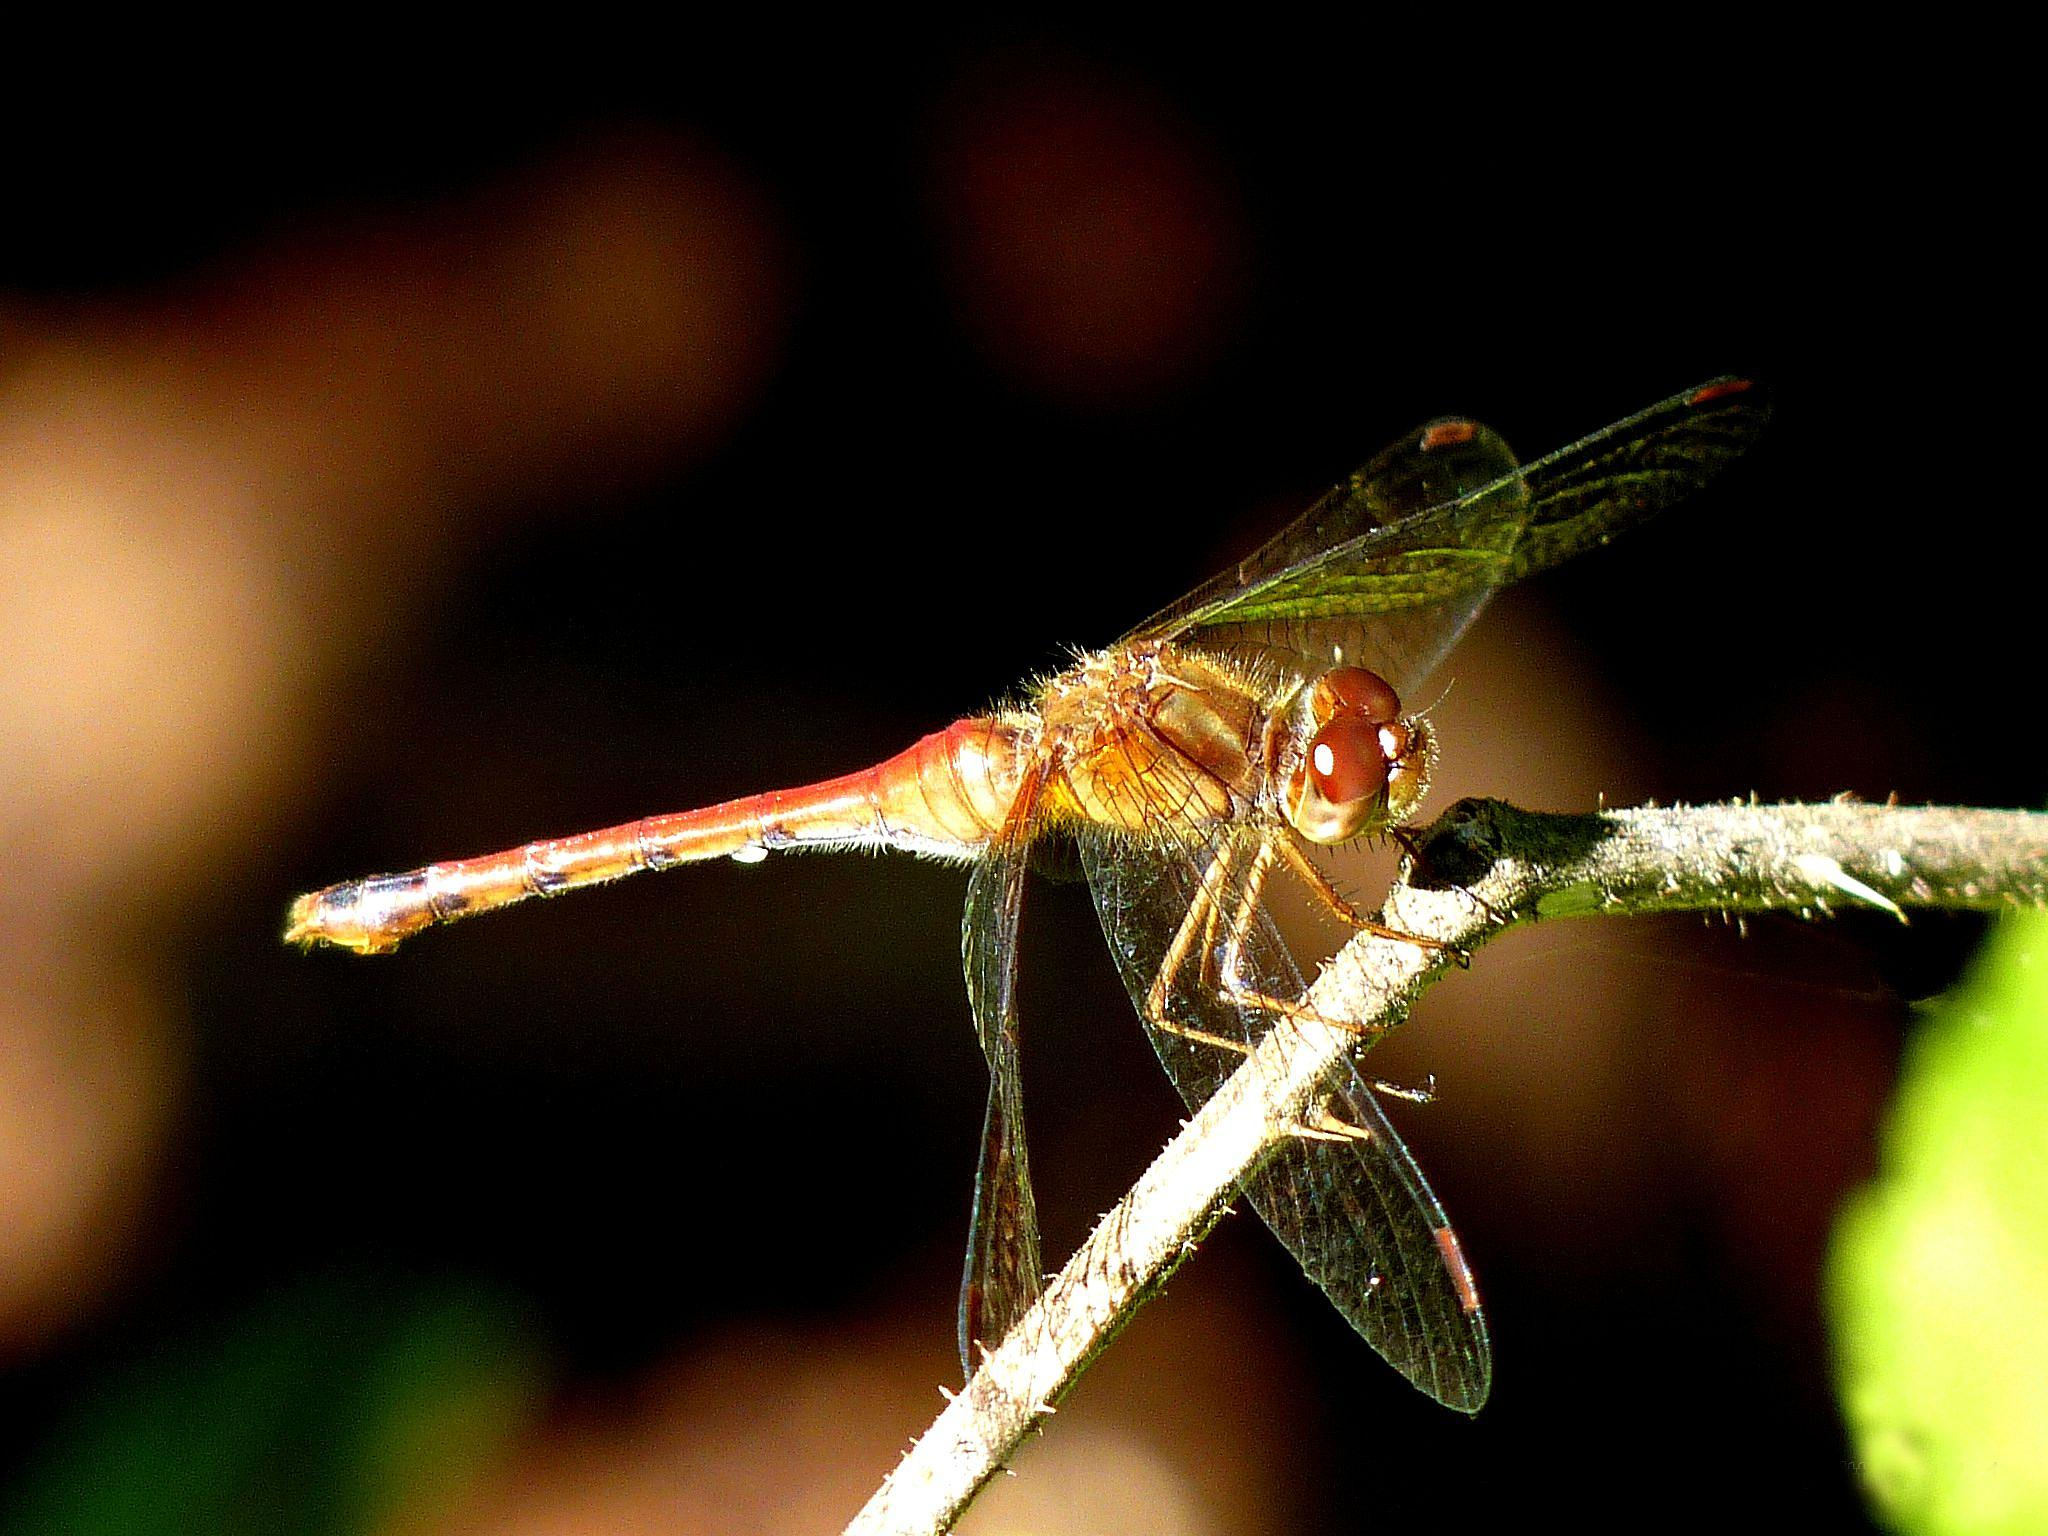 Dragonfly in the sun by paulette.king